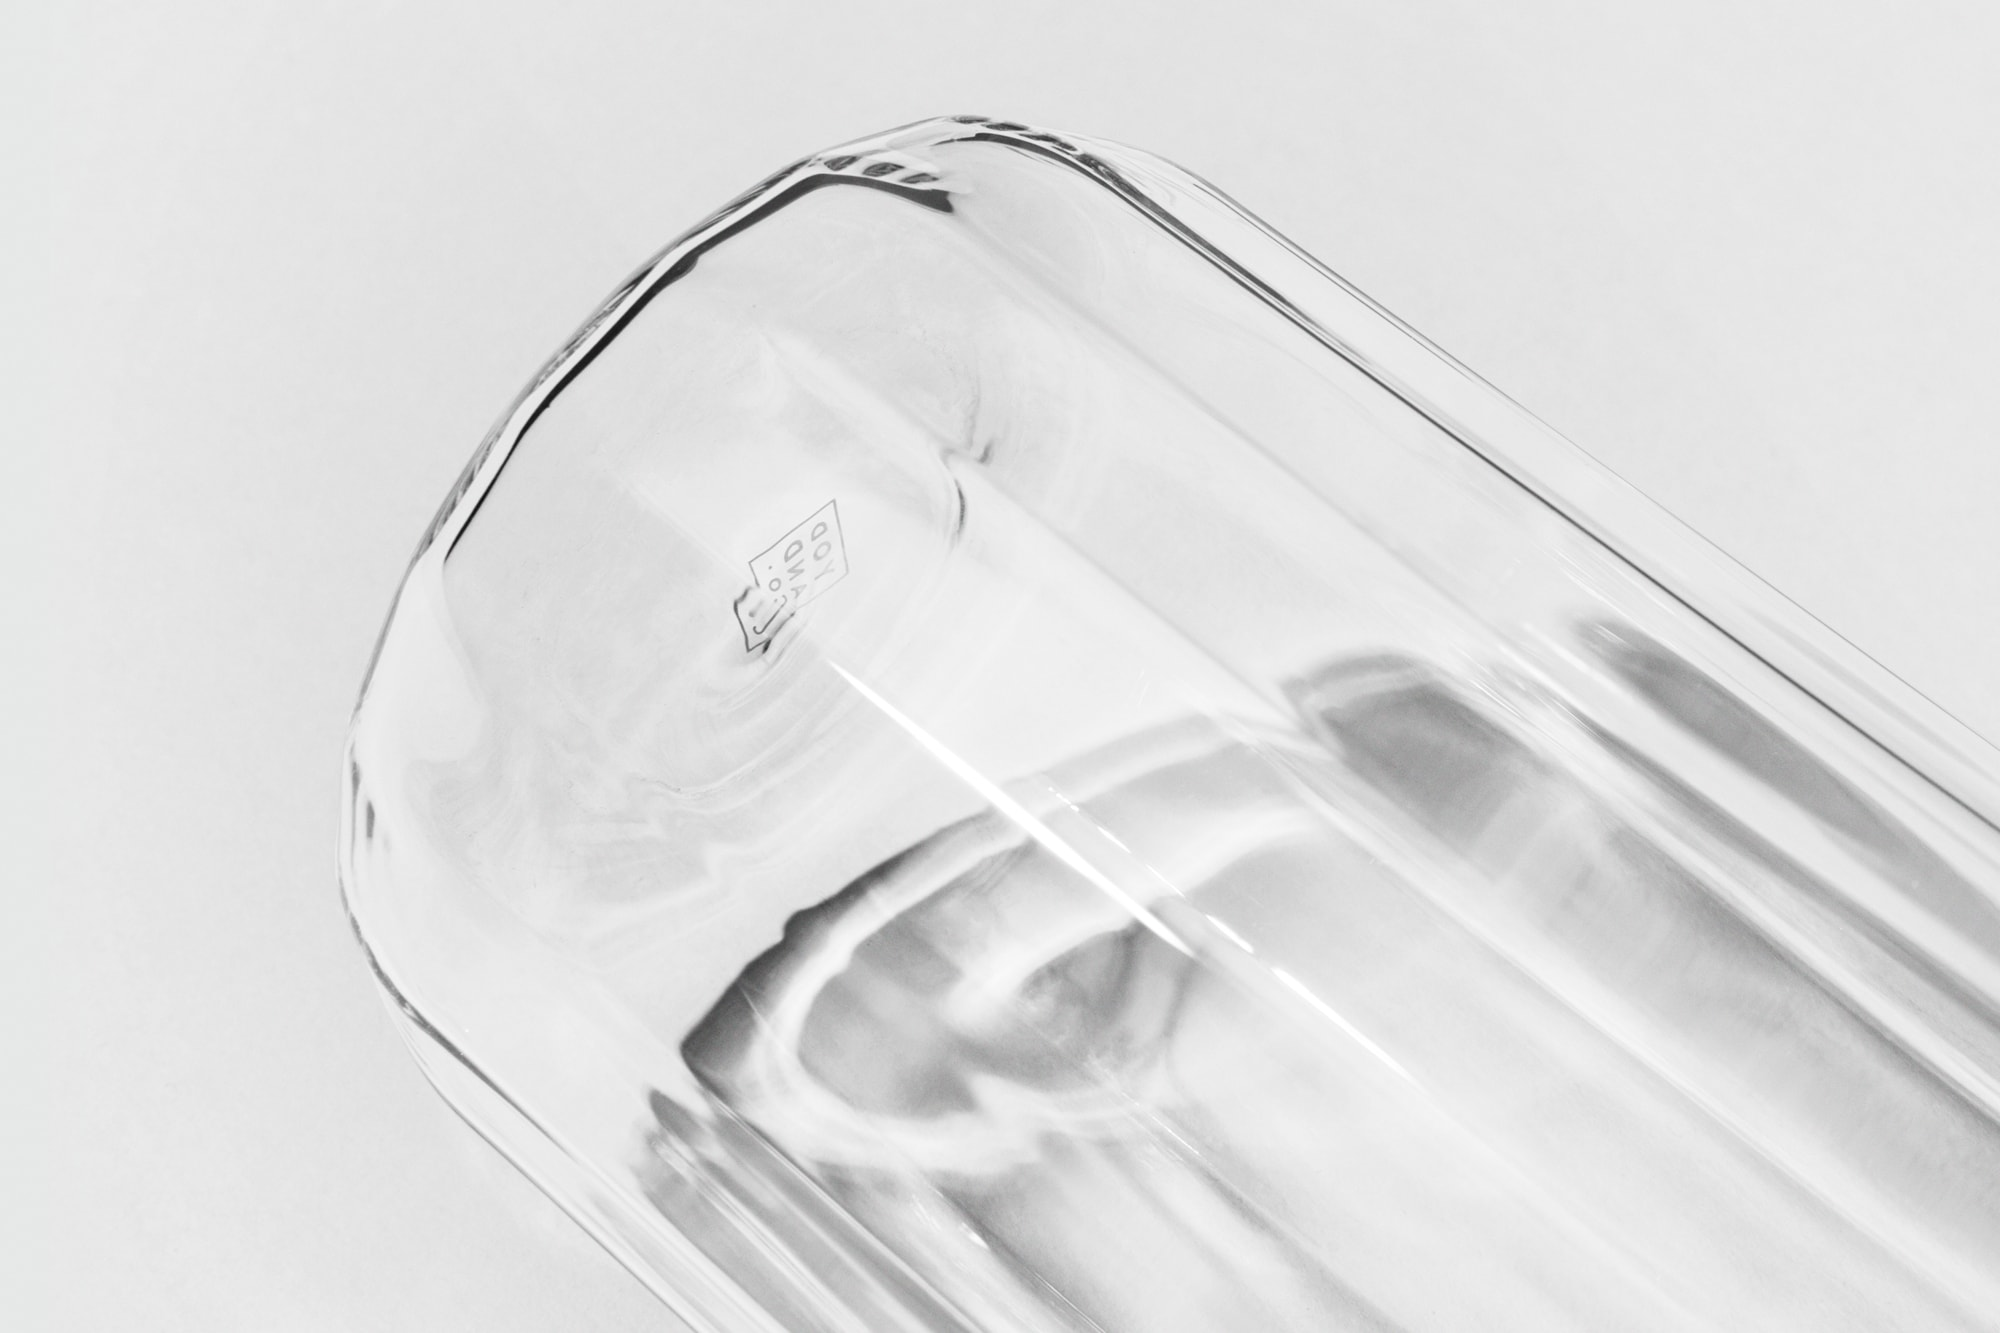 Base of the Rivington Glassware carafe against a light grey background. The facets and branding are shown in more detail.